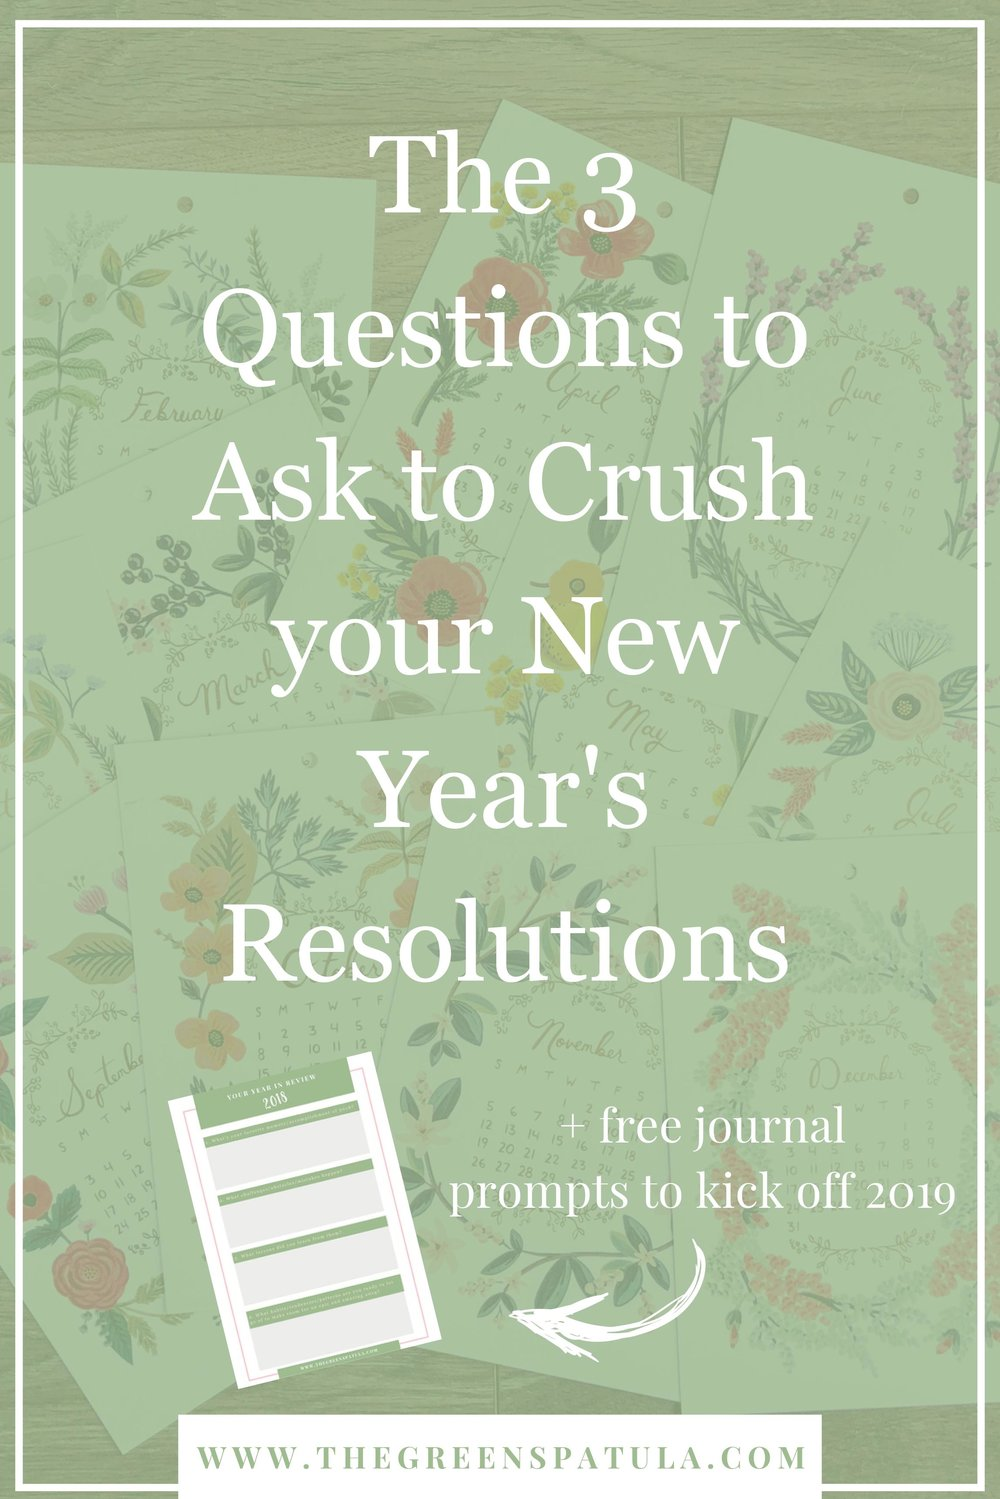 3 questions to ask to crush your New Year's resolutions - Avoid repeating the last year and set yourself up for success! Use these 3 questions to help you accomplish your New Year's resolutions. Go deeper with a free journaling download that will help you reflect and review the past year. #yearinreview #freedownload #selfcare #newyear #journal #positivemindset